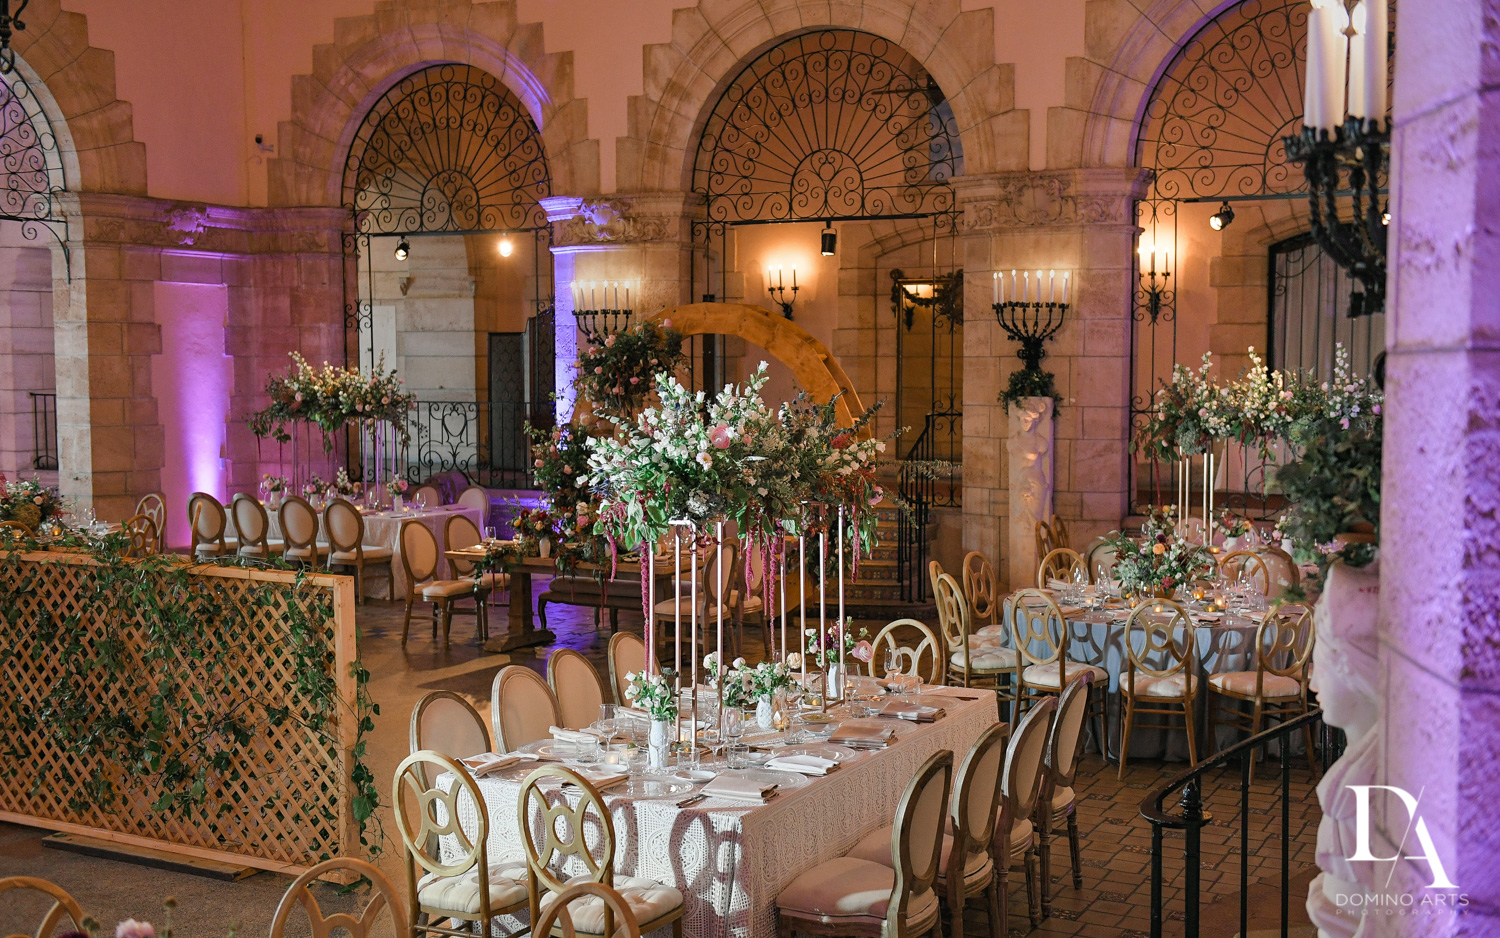 room photos at Vintage Garden Wedding at Flagler Museum Palm Beach by Domino Arts Photography